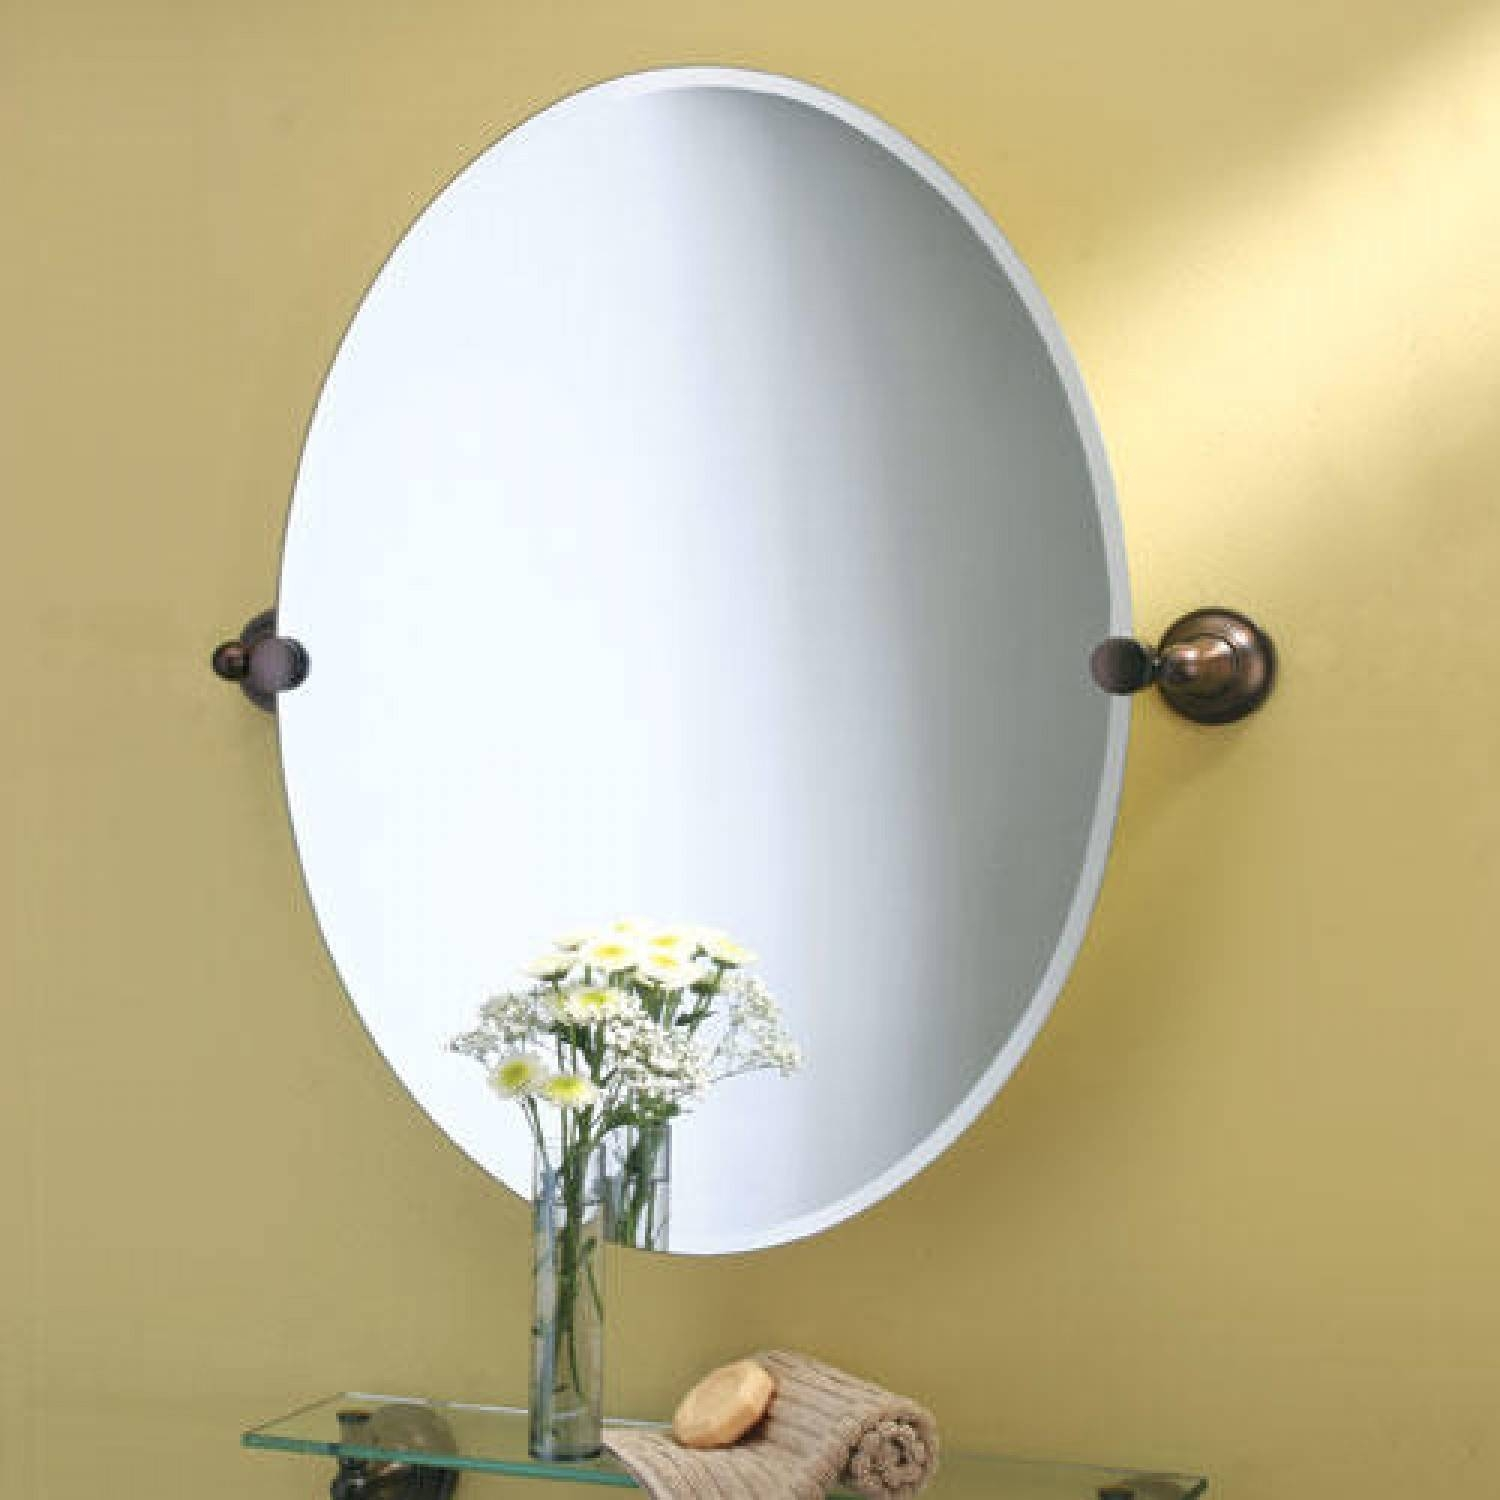 Oval Bathroom Mirror With Double Brown Metal Hook On Cream Wall pertaining to Oval Cream Mirrors (Image 11 of 15)